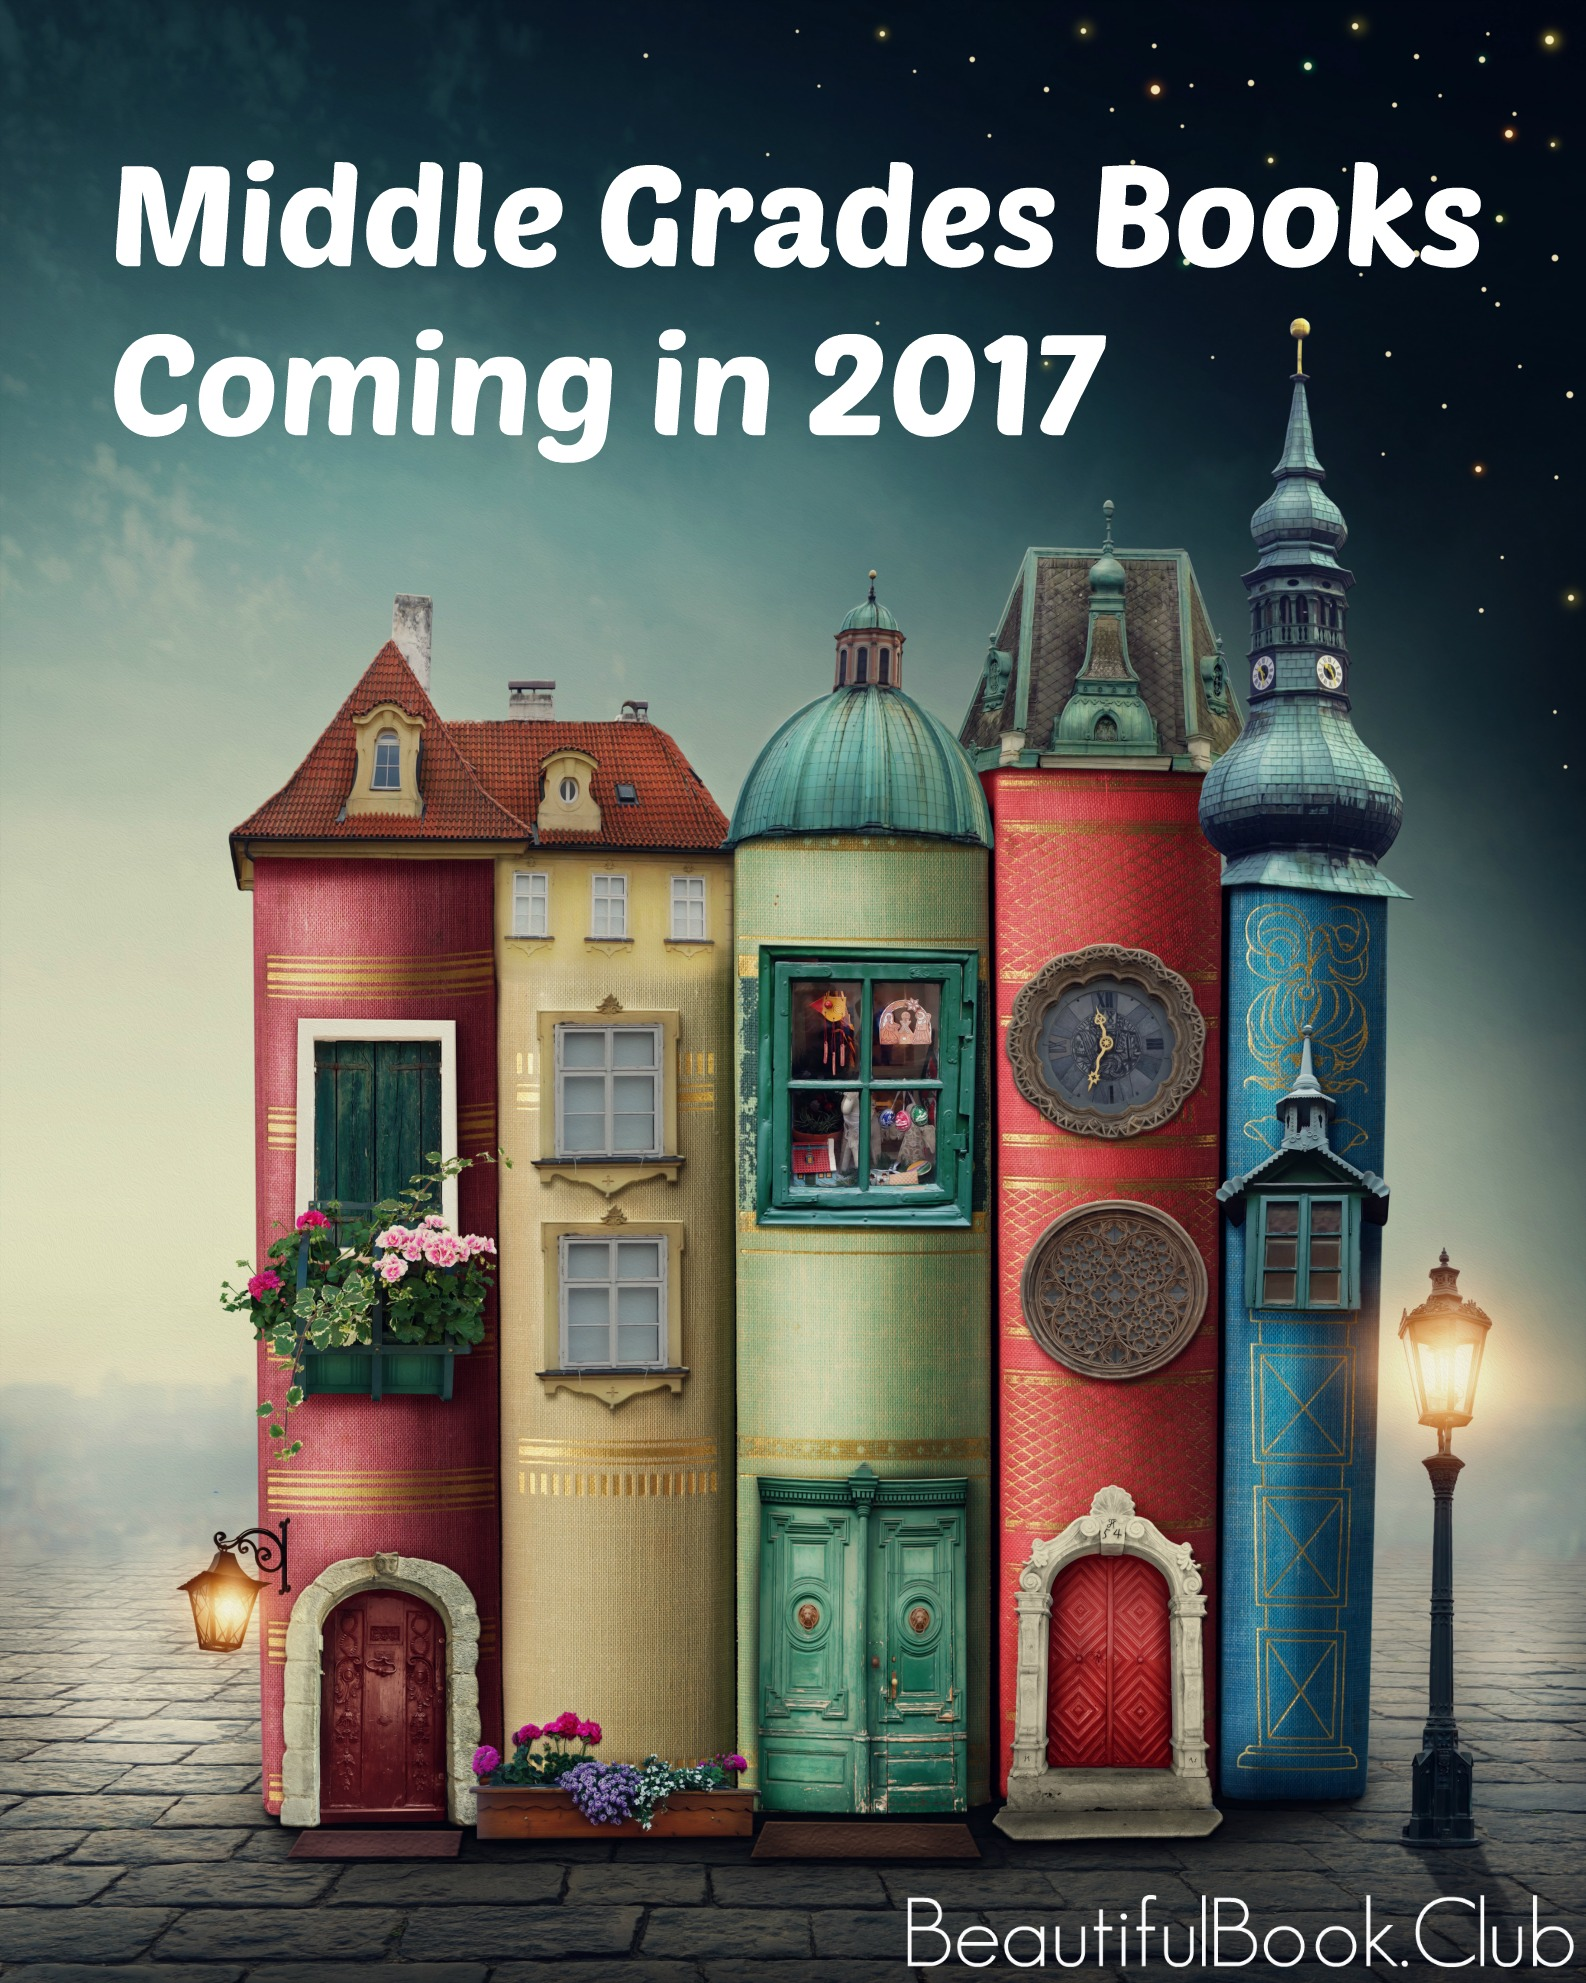 Middle Grades Books Coming In 2017 featured image